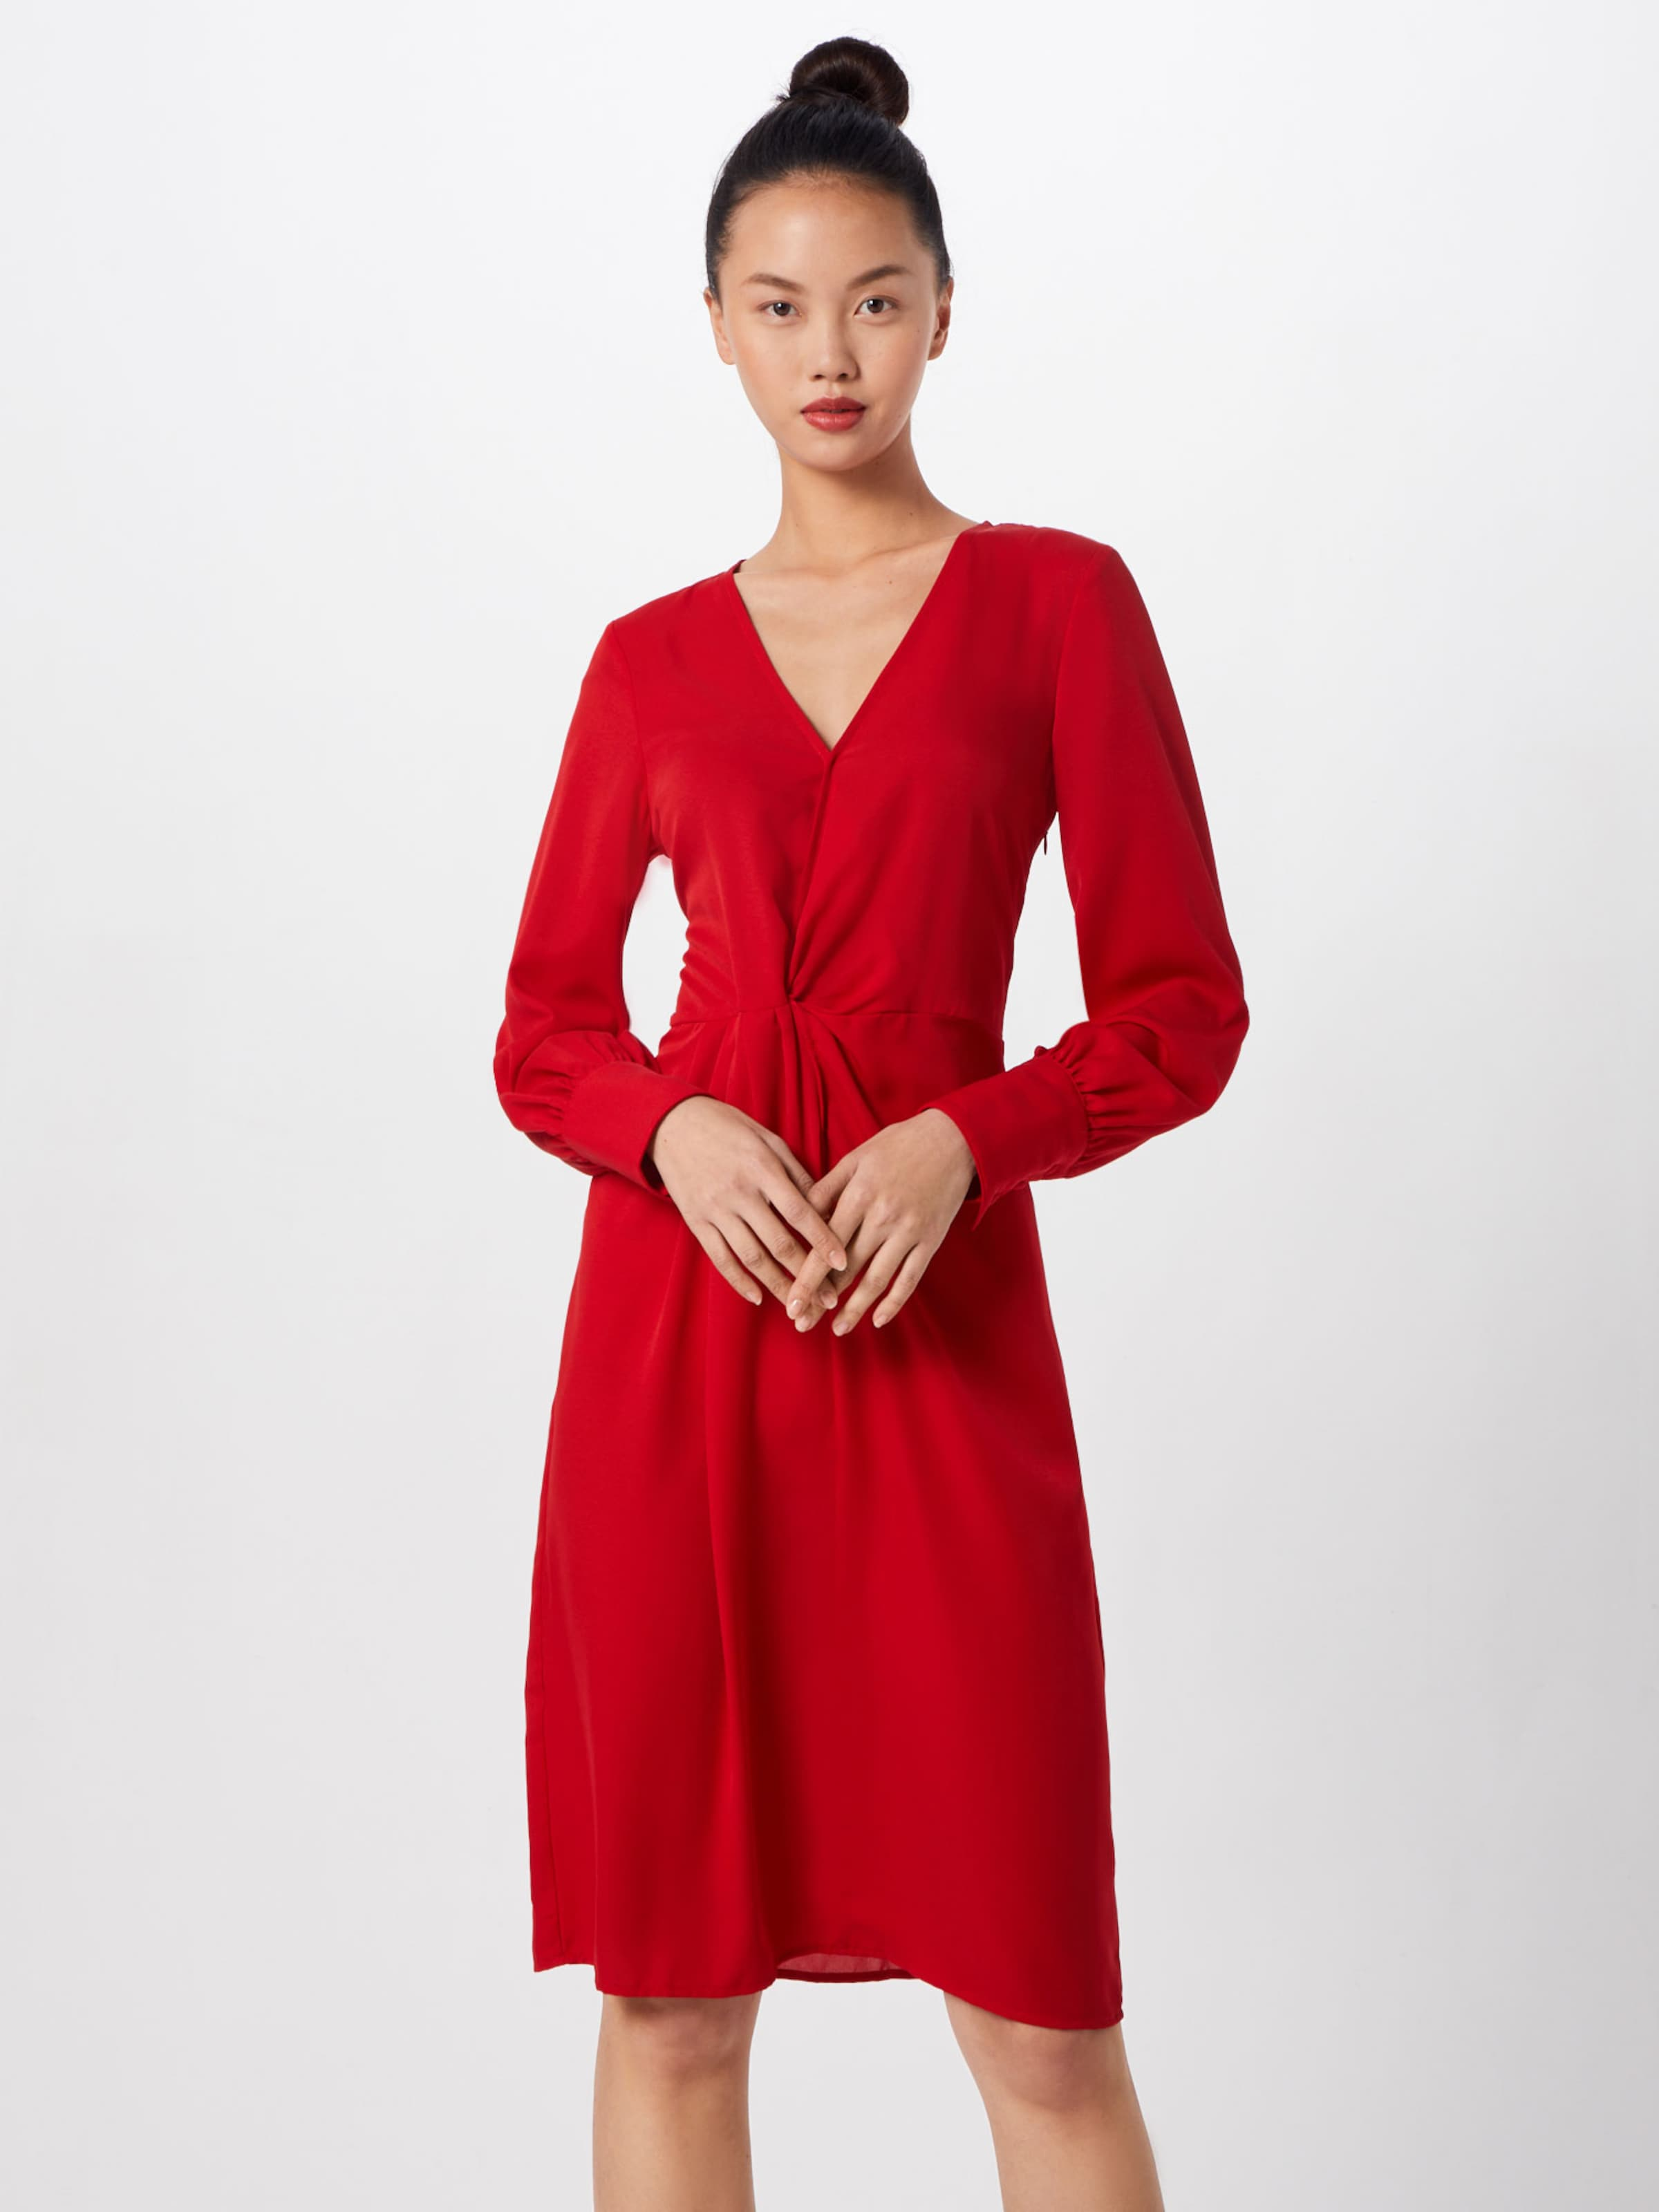 Kleid 'cannes' 4thamp; In Reckless Rot vwOm8n0N